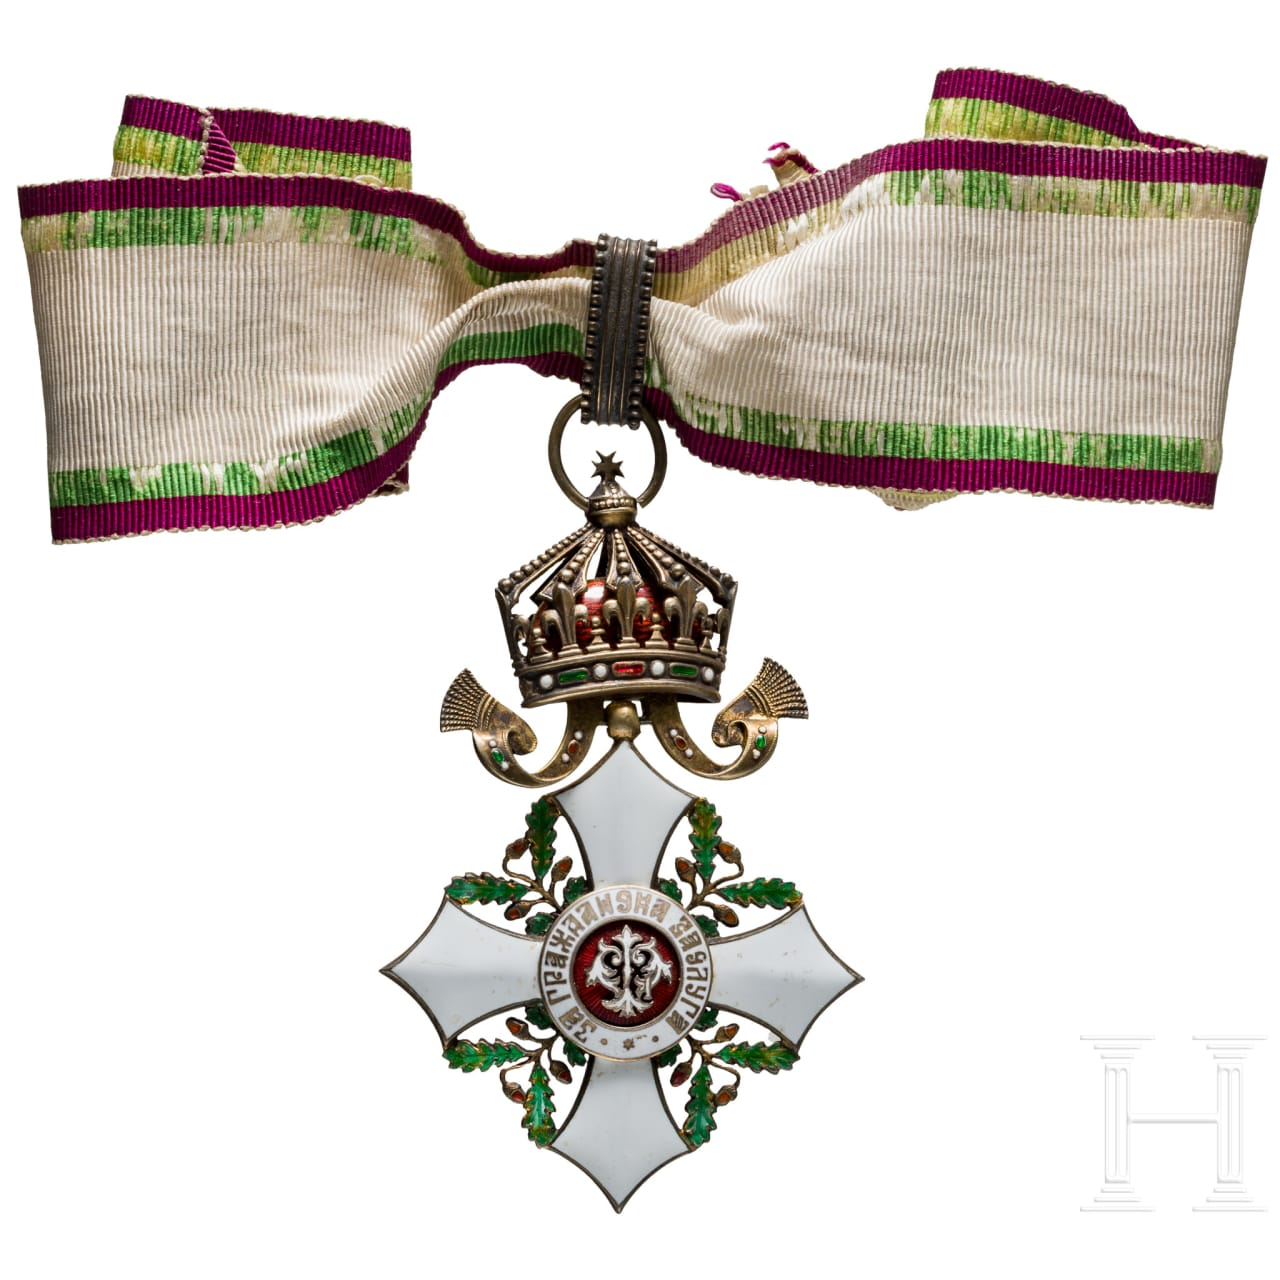 Order of Civil Service, Commander's Cross